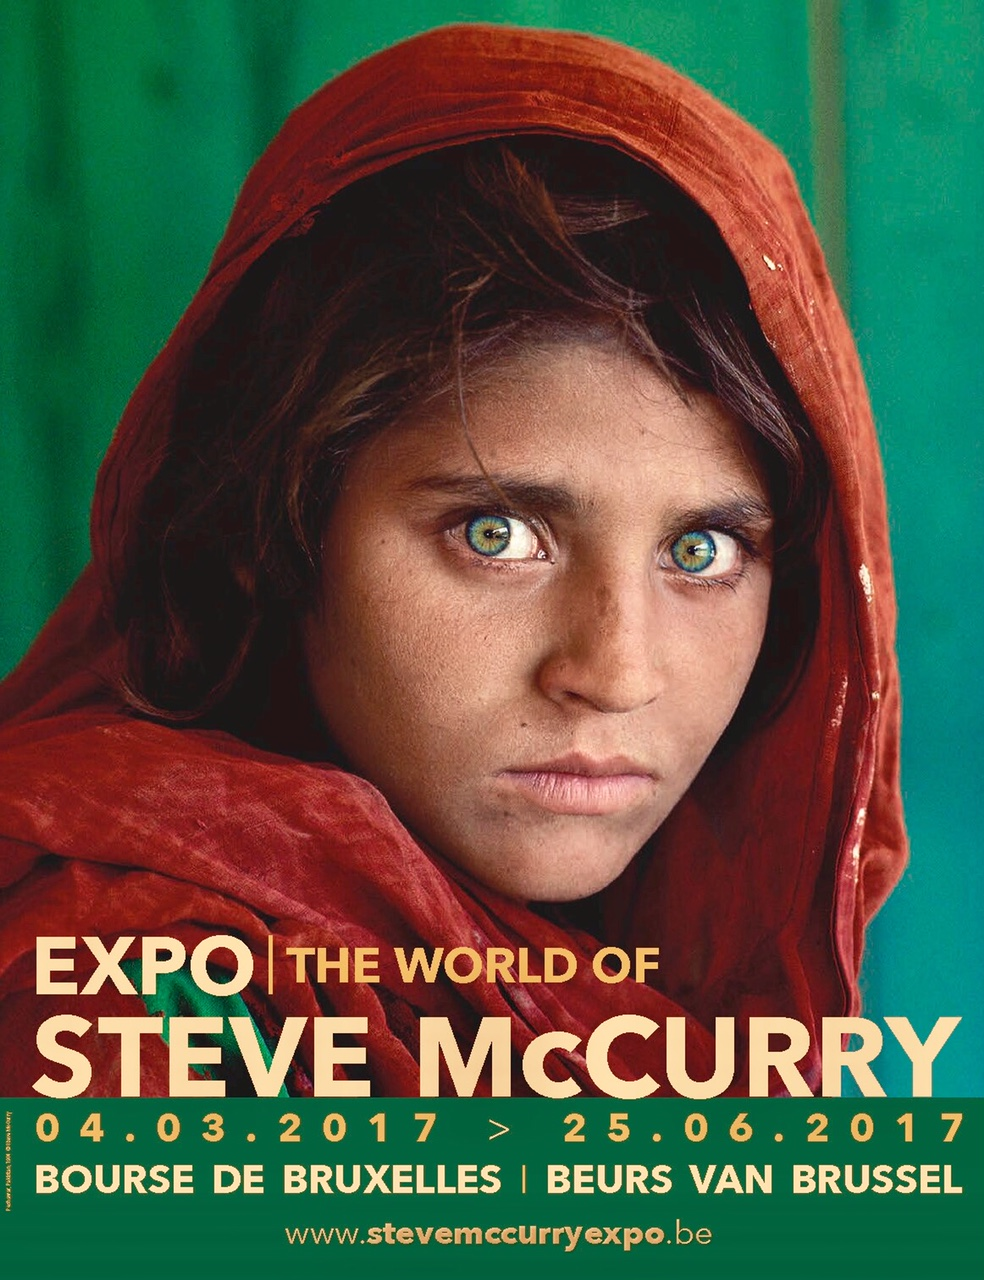 McCurry expo.jpg